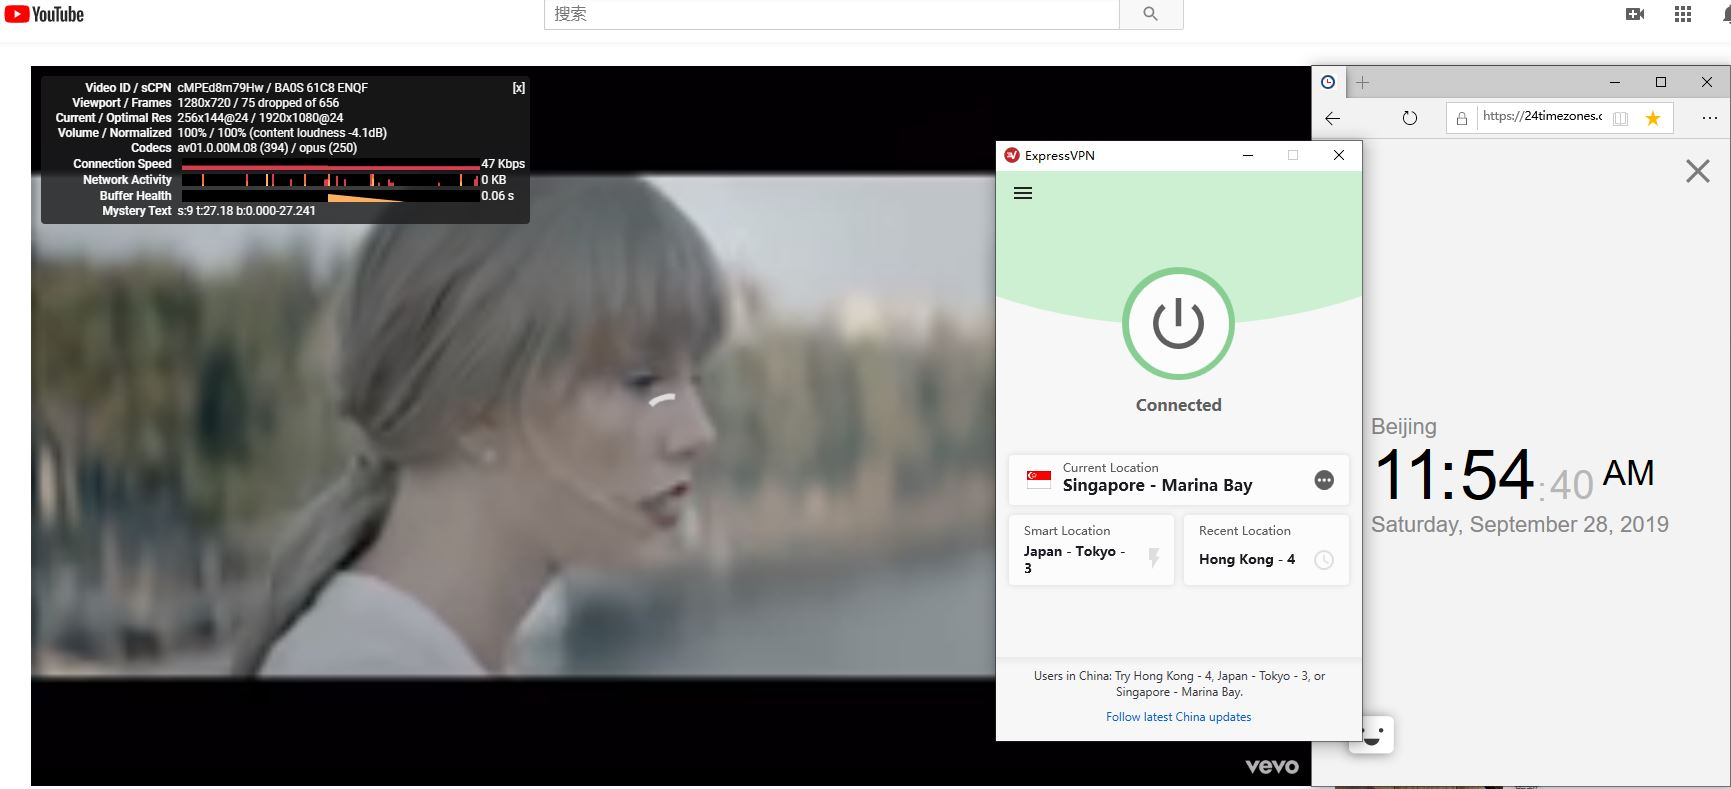 windows expressvpn singapore marina bay YouTube测速-20190928